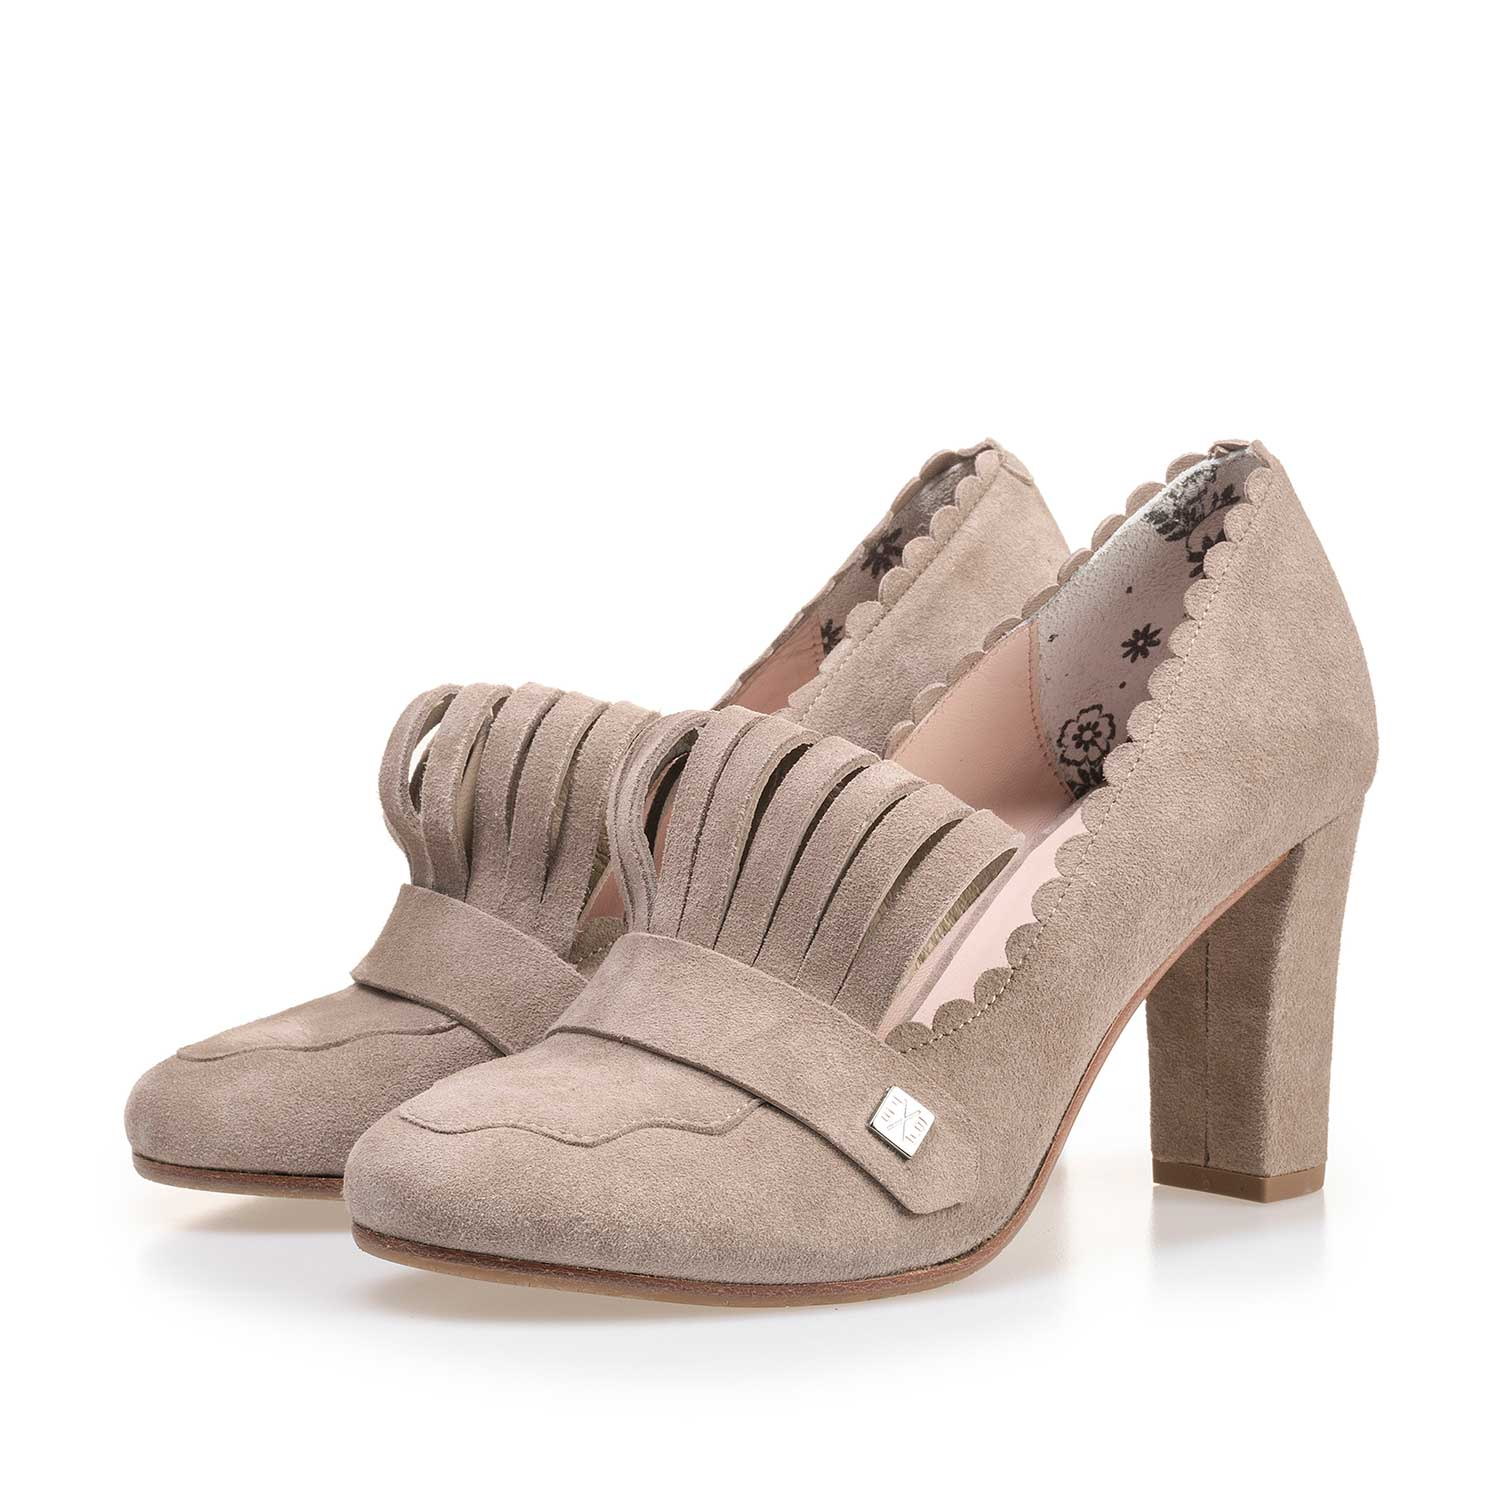 85190/06 - Taupe-coloured calf's suede leather pumps